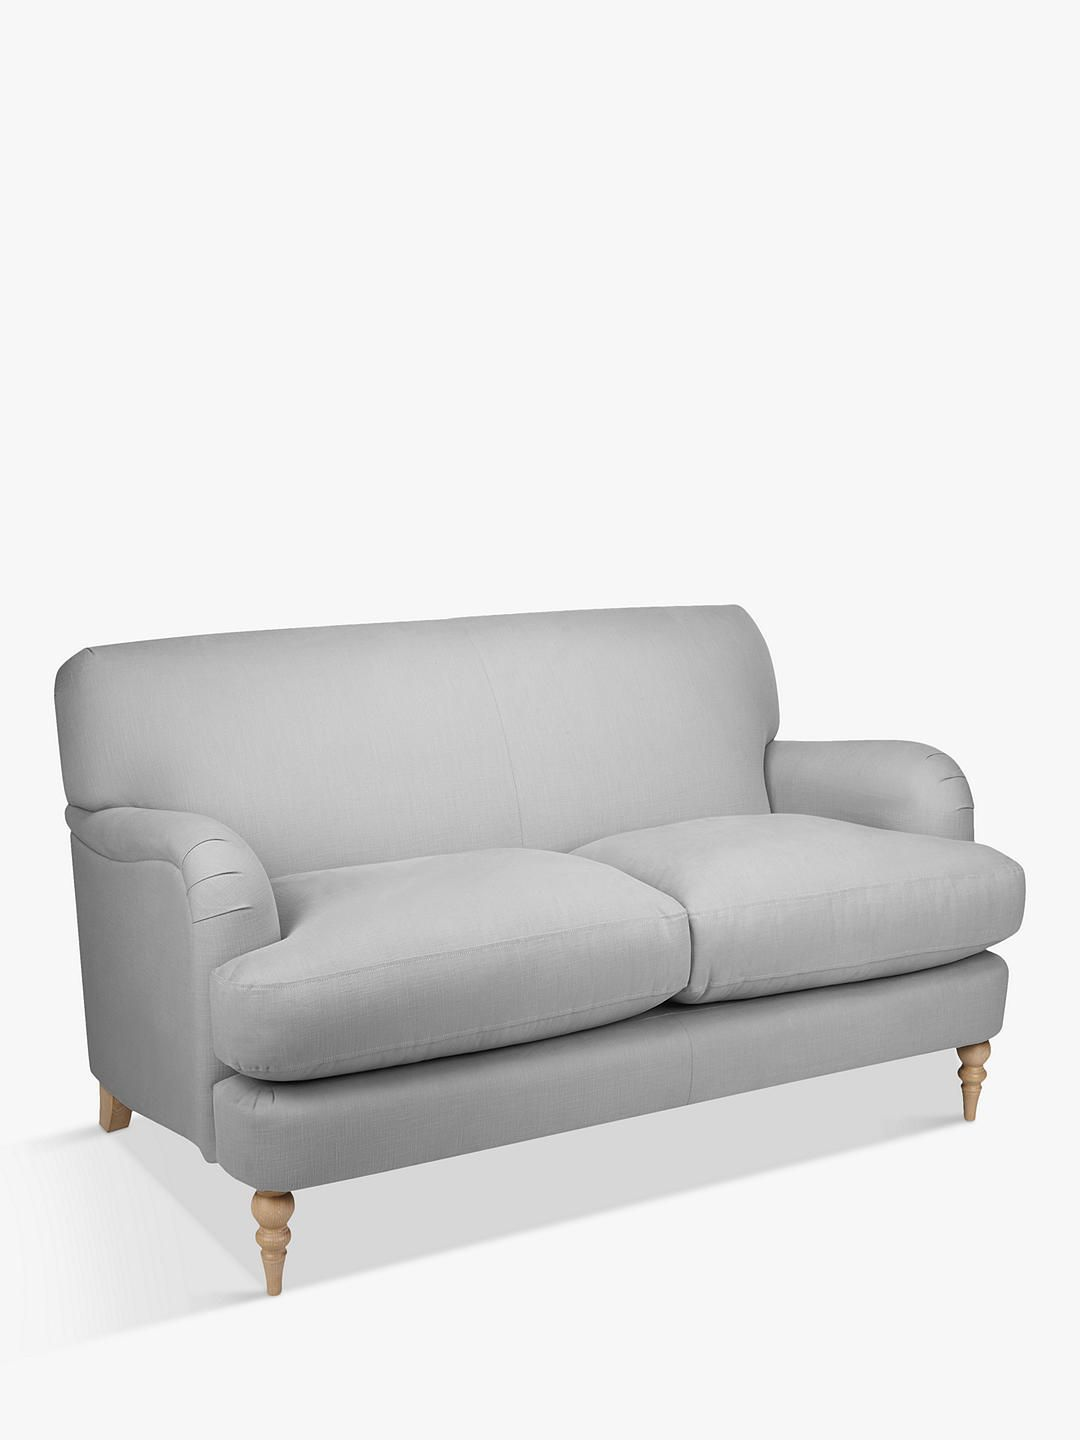 John Lewis Partners Harrogate High Back Small 2 Seater Sofa 2 Seater Sofa Seater Sofa Sofa